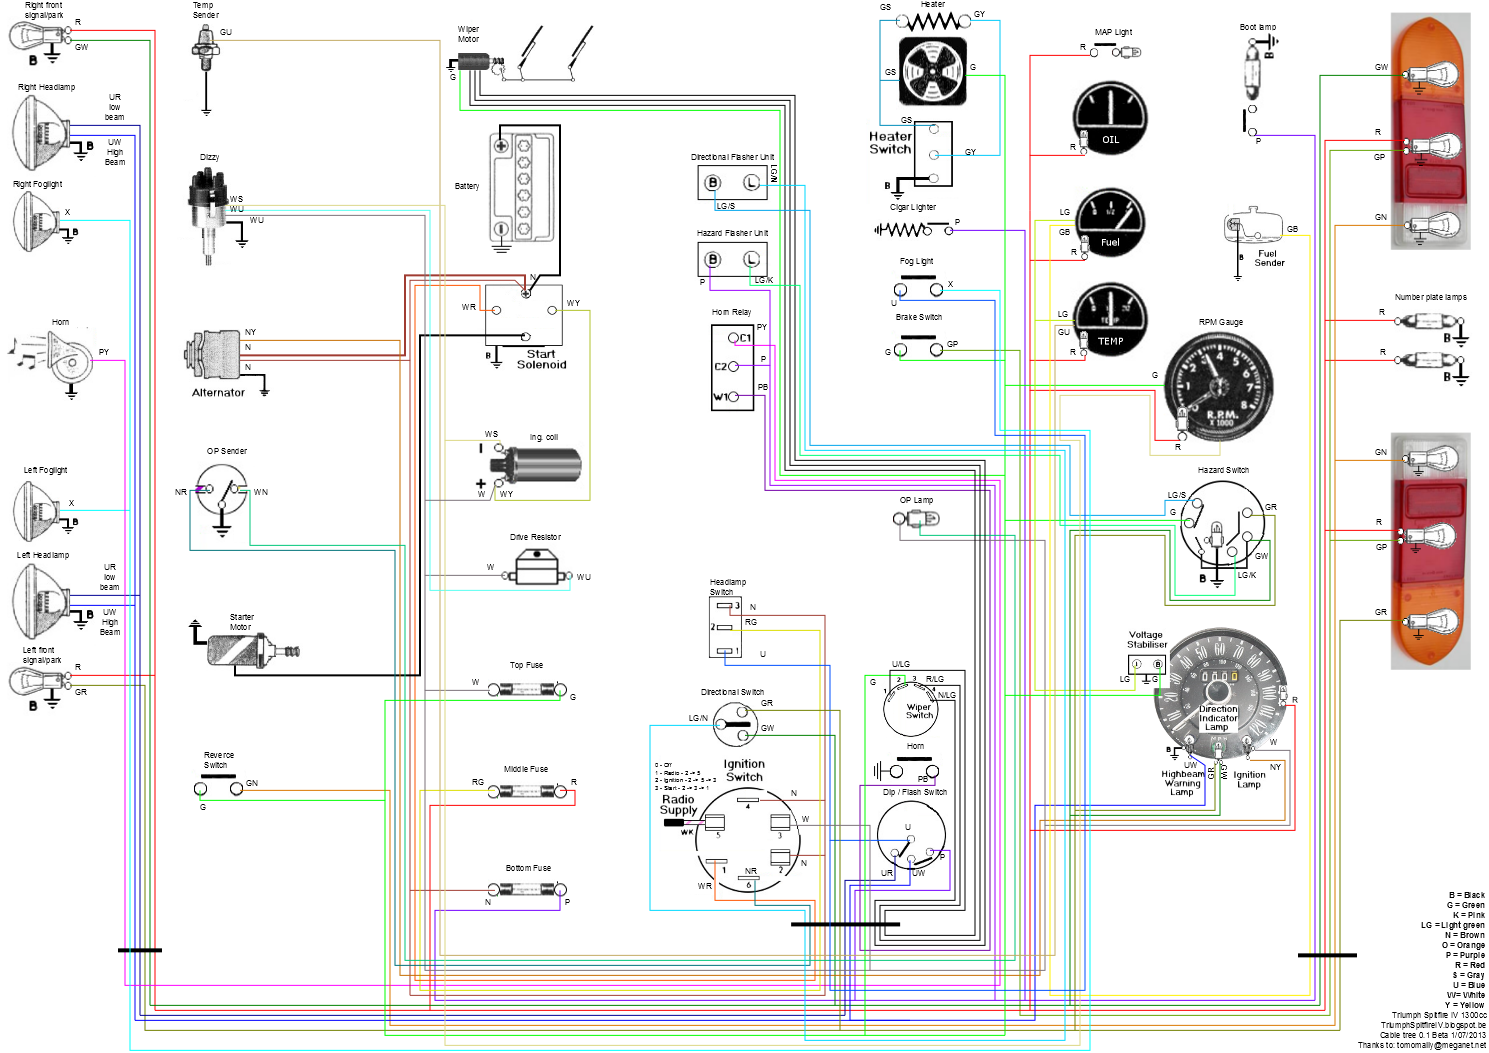 spitfire iv wiring diagram spitfire mkiv wiring diagram how to library the triumph experience austin healey 3000 wiring diagram at gsmx.co